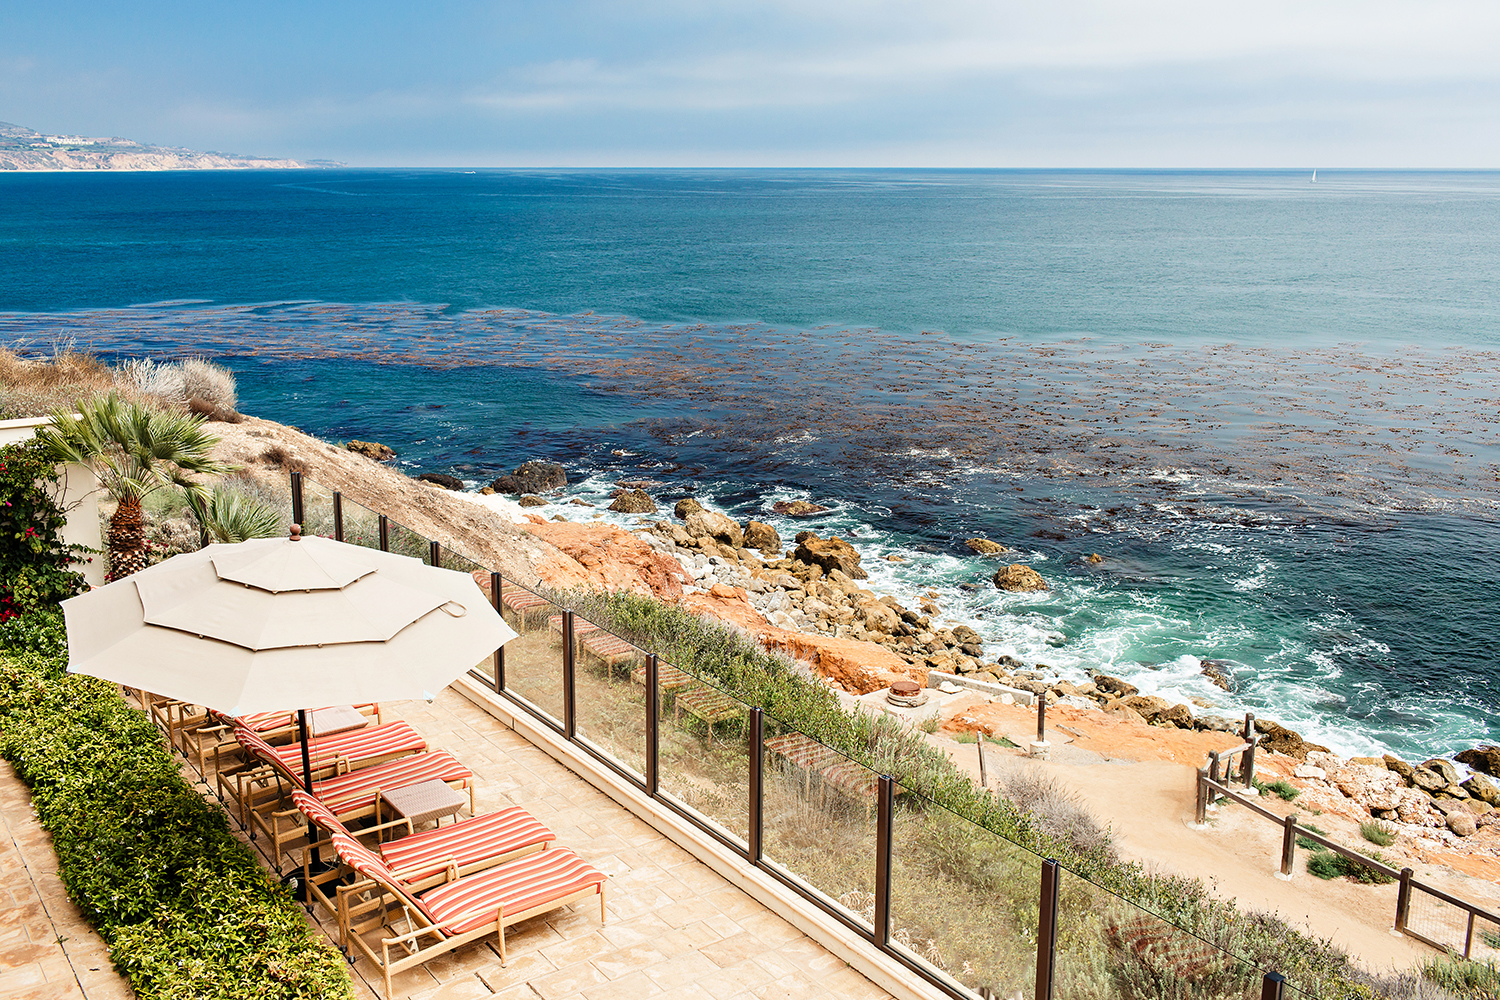 Terranea Resort shares its annual Summer Celebrations lineup featuring a variety of wellness, family-friendly, adventure, live music, and culinary experiences.